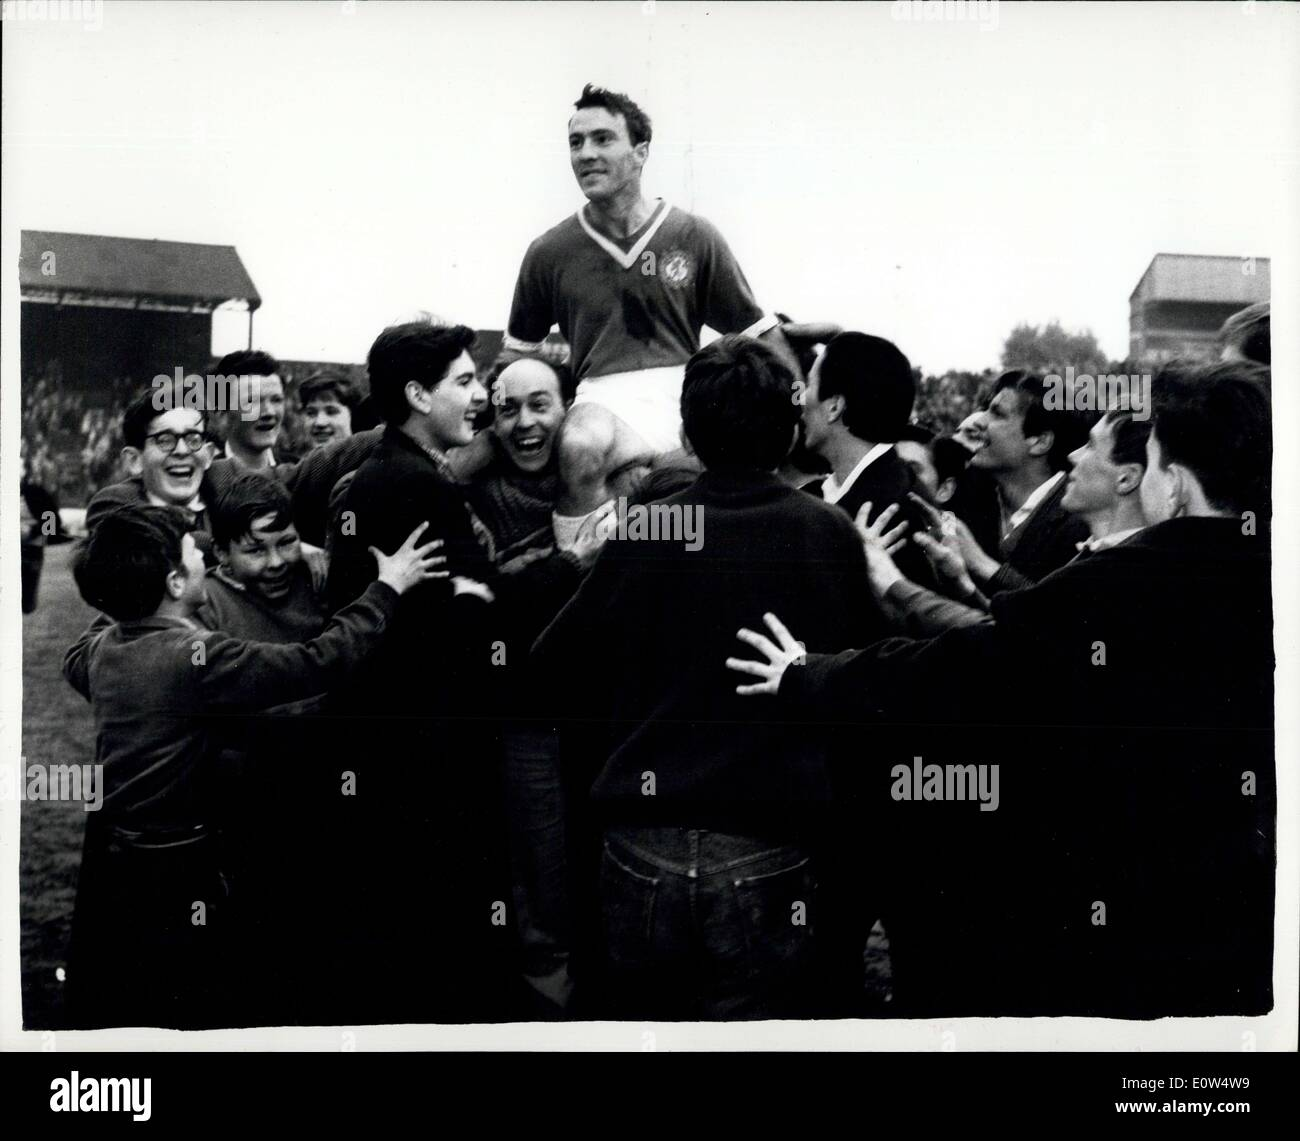 Jimmy Greaves Stock Photos & Jimmy Greaves Stock Images - Alamy